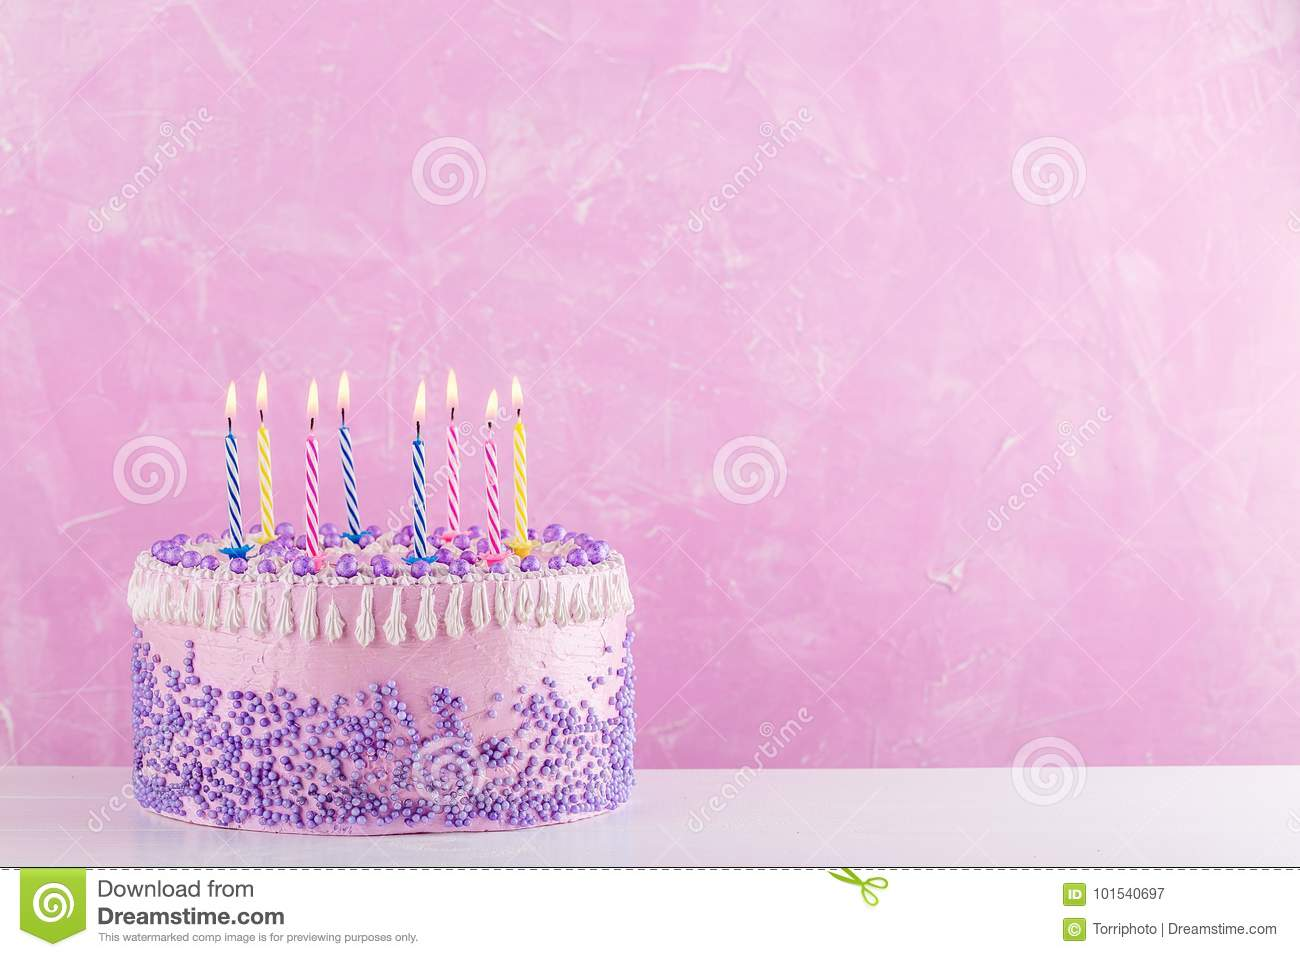 Swell Birthday Cake With Colorful Candles Over Pink Background Stock Birthday Cards Printable Opercafe Filternl